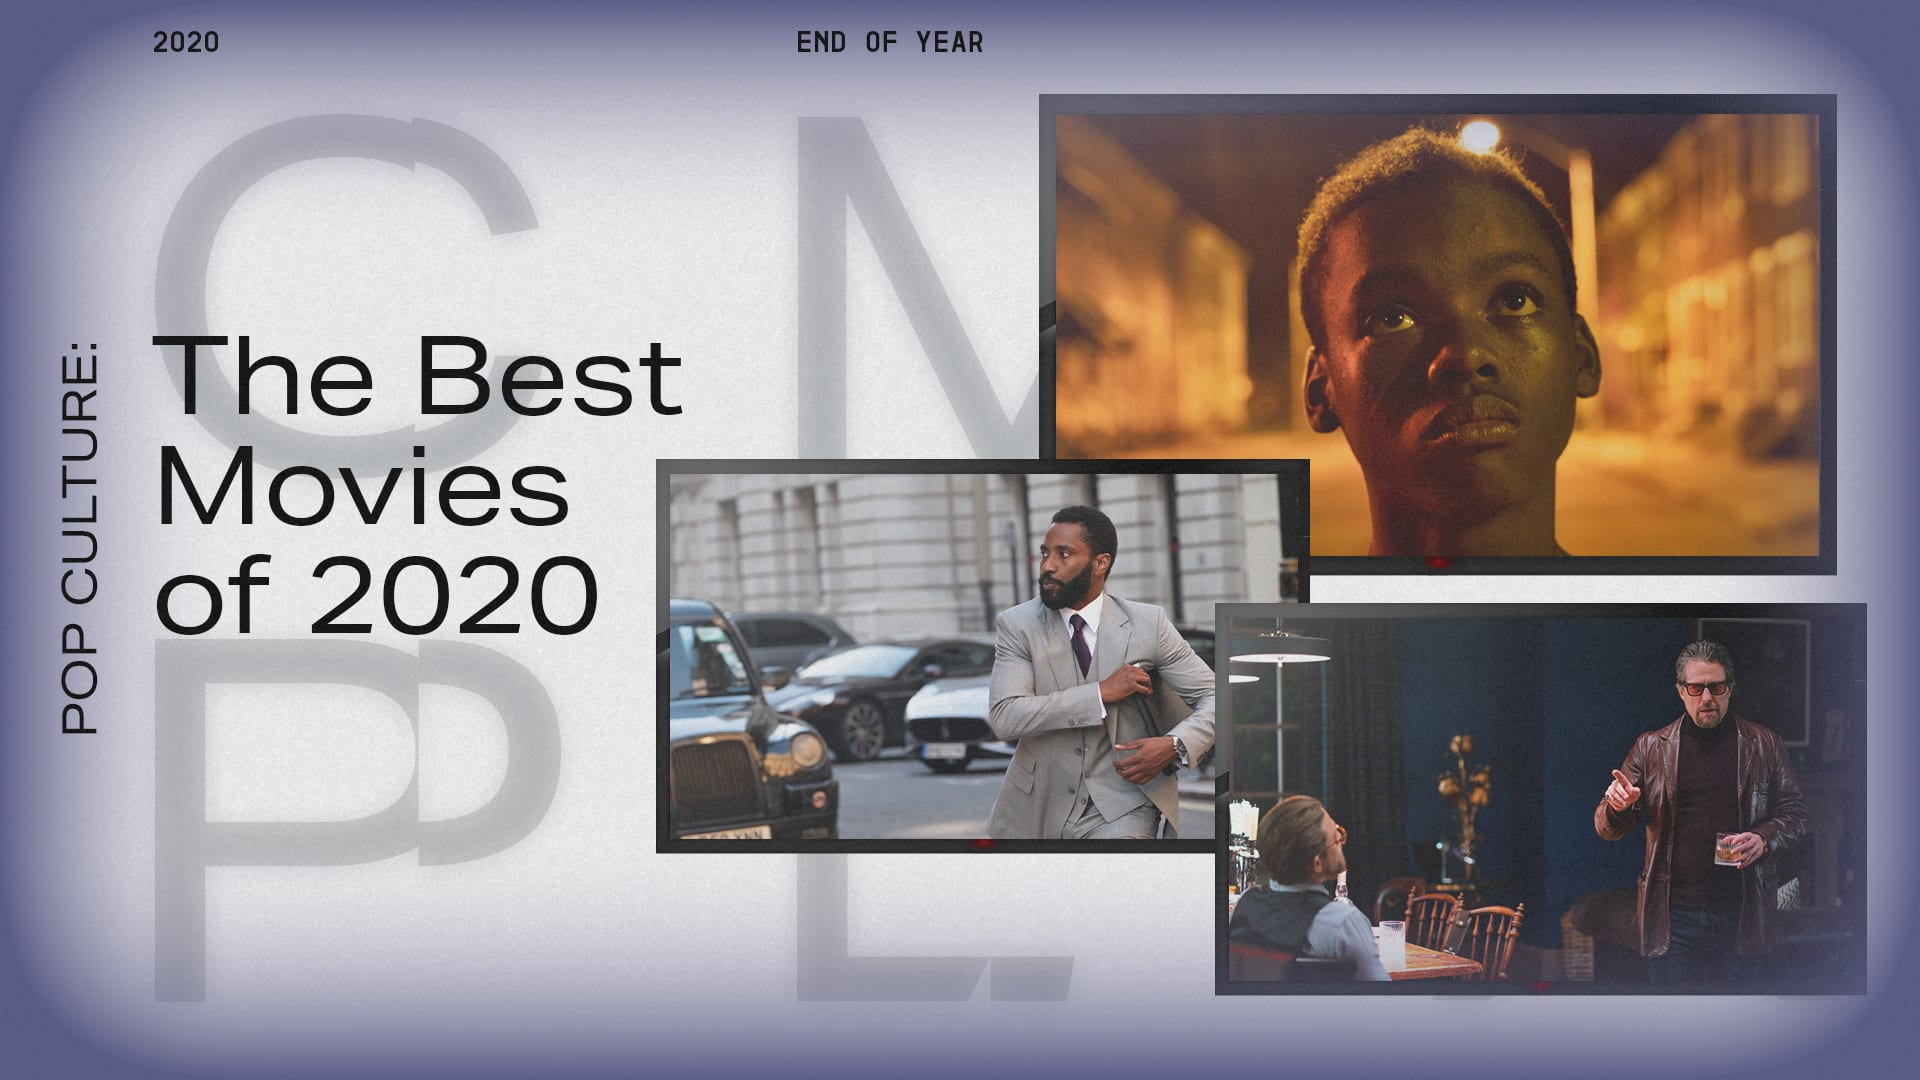 The Best Movies of 2020